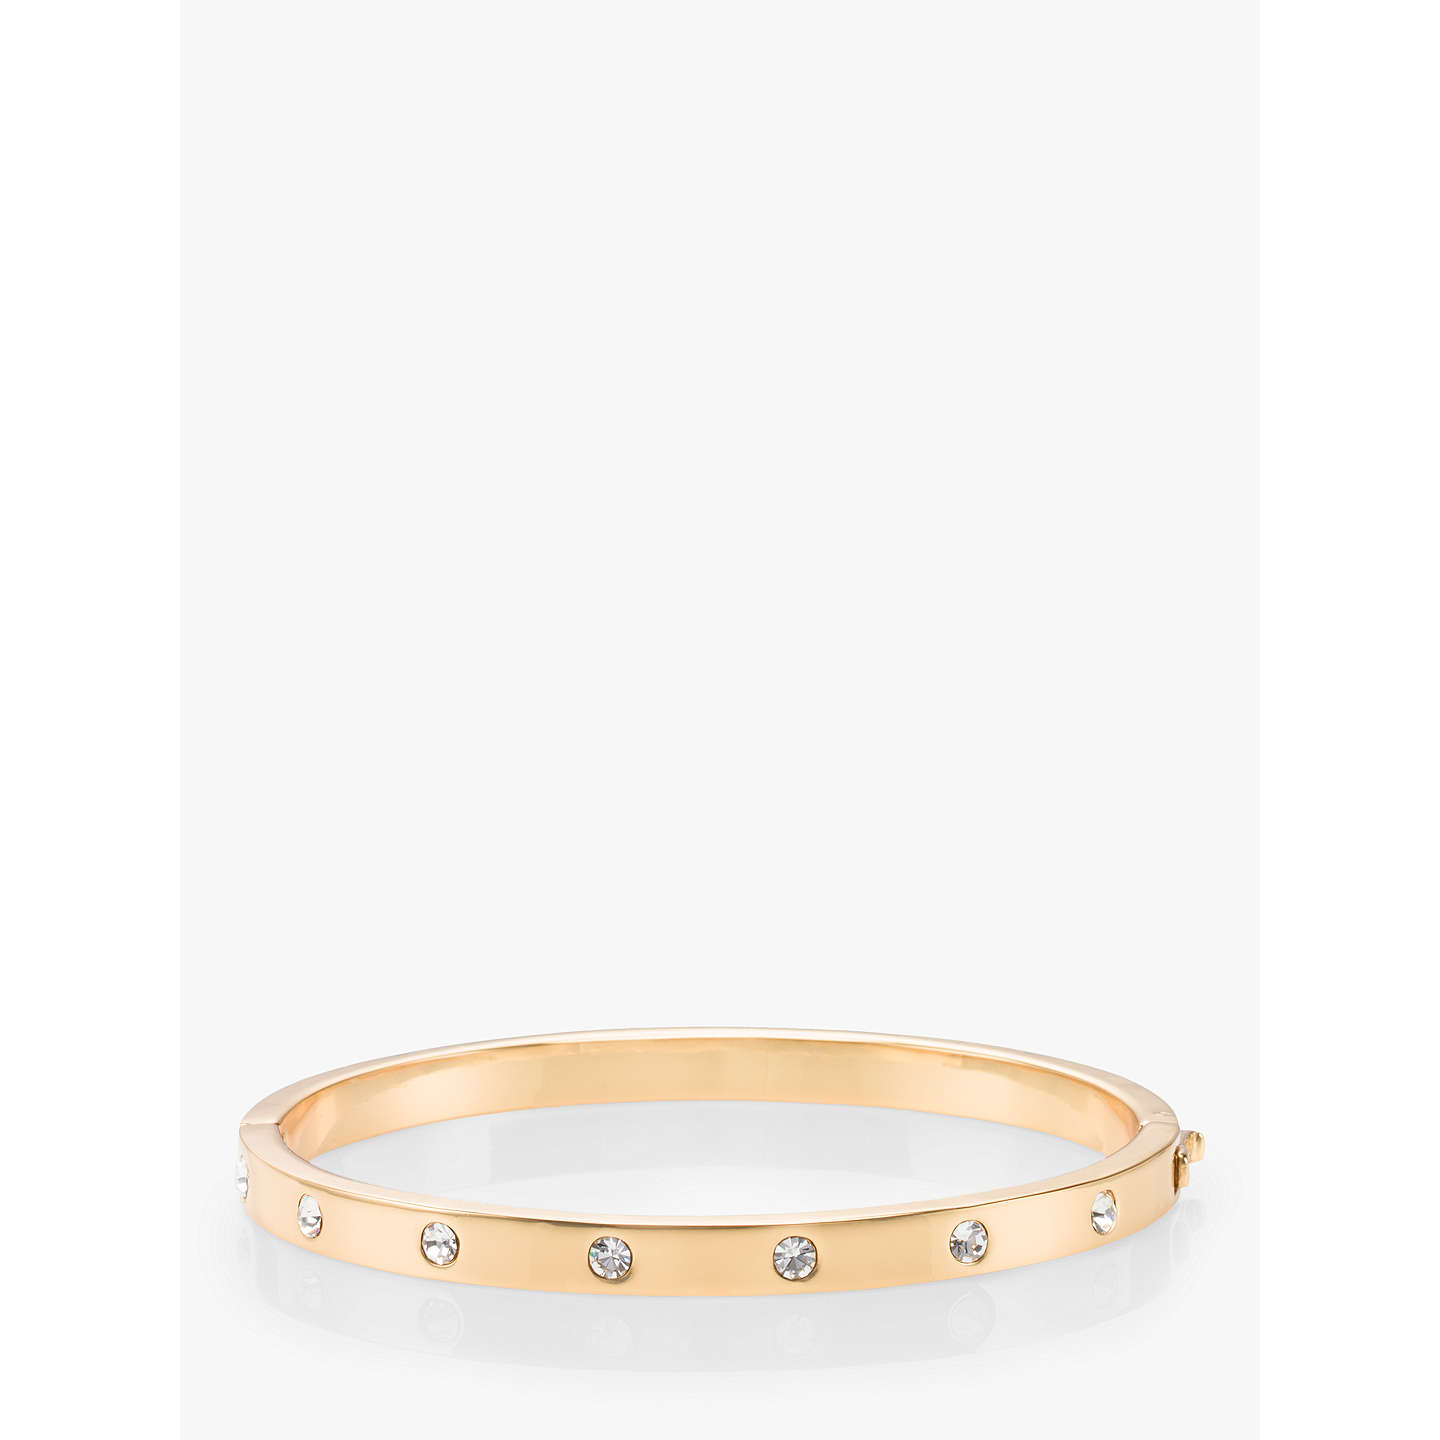 at excellent columbia id bezel l condition bracelets jewelry cropped in sale yellow gold bangles for hinged solitaire bangle bracelet bypass j diamond